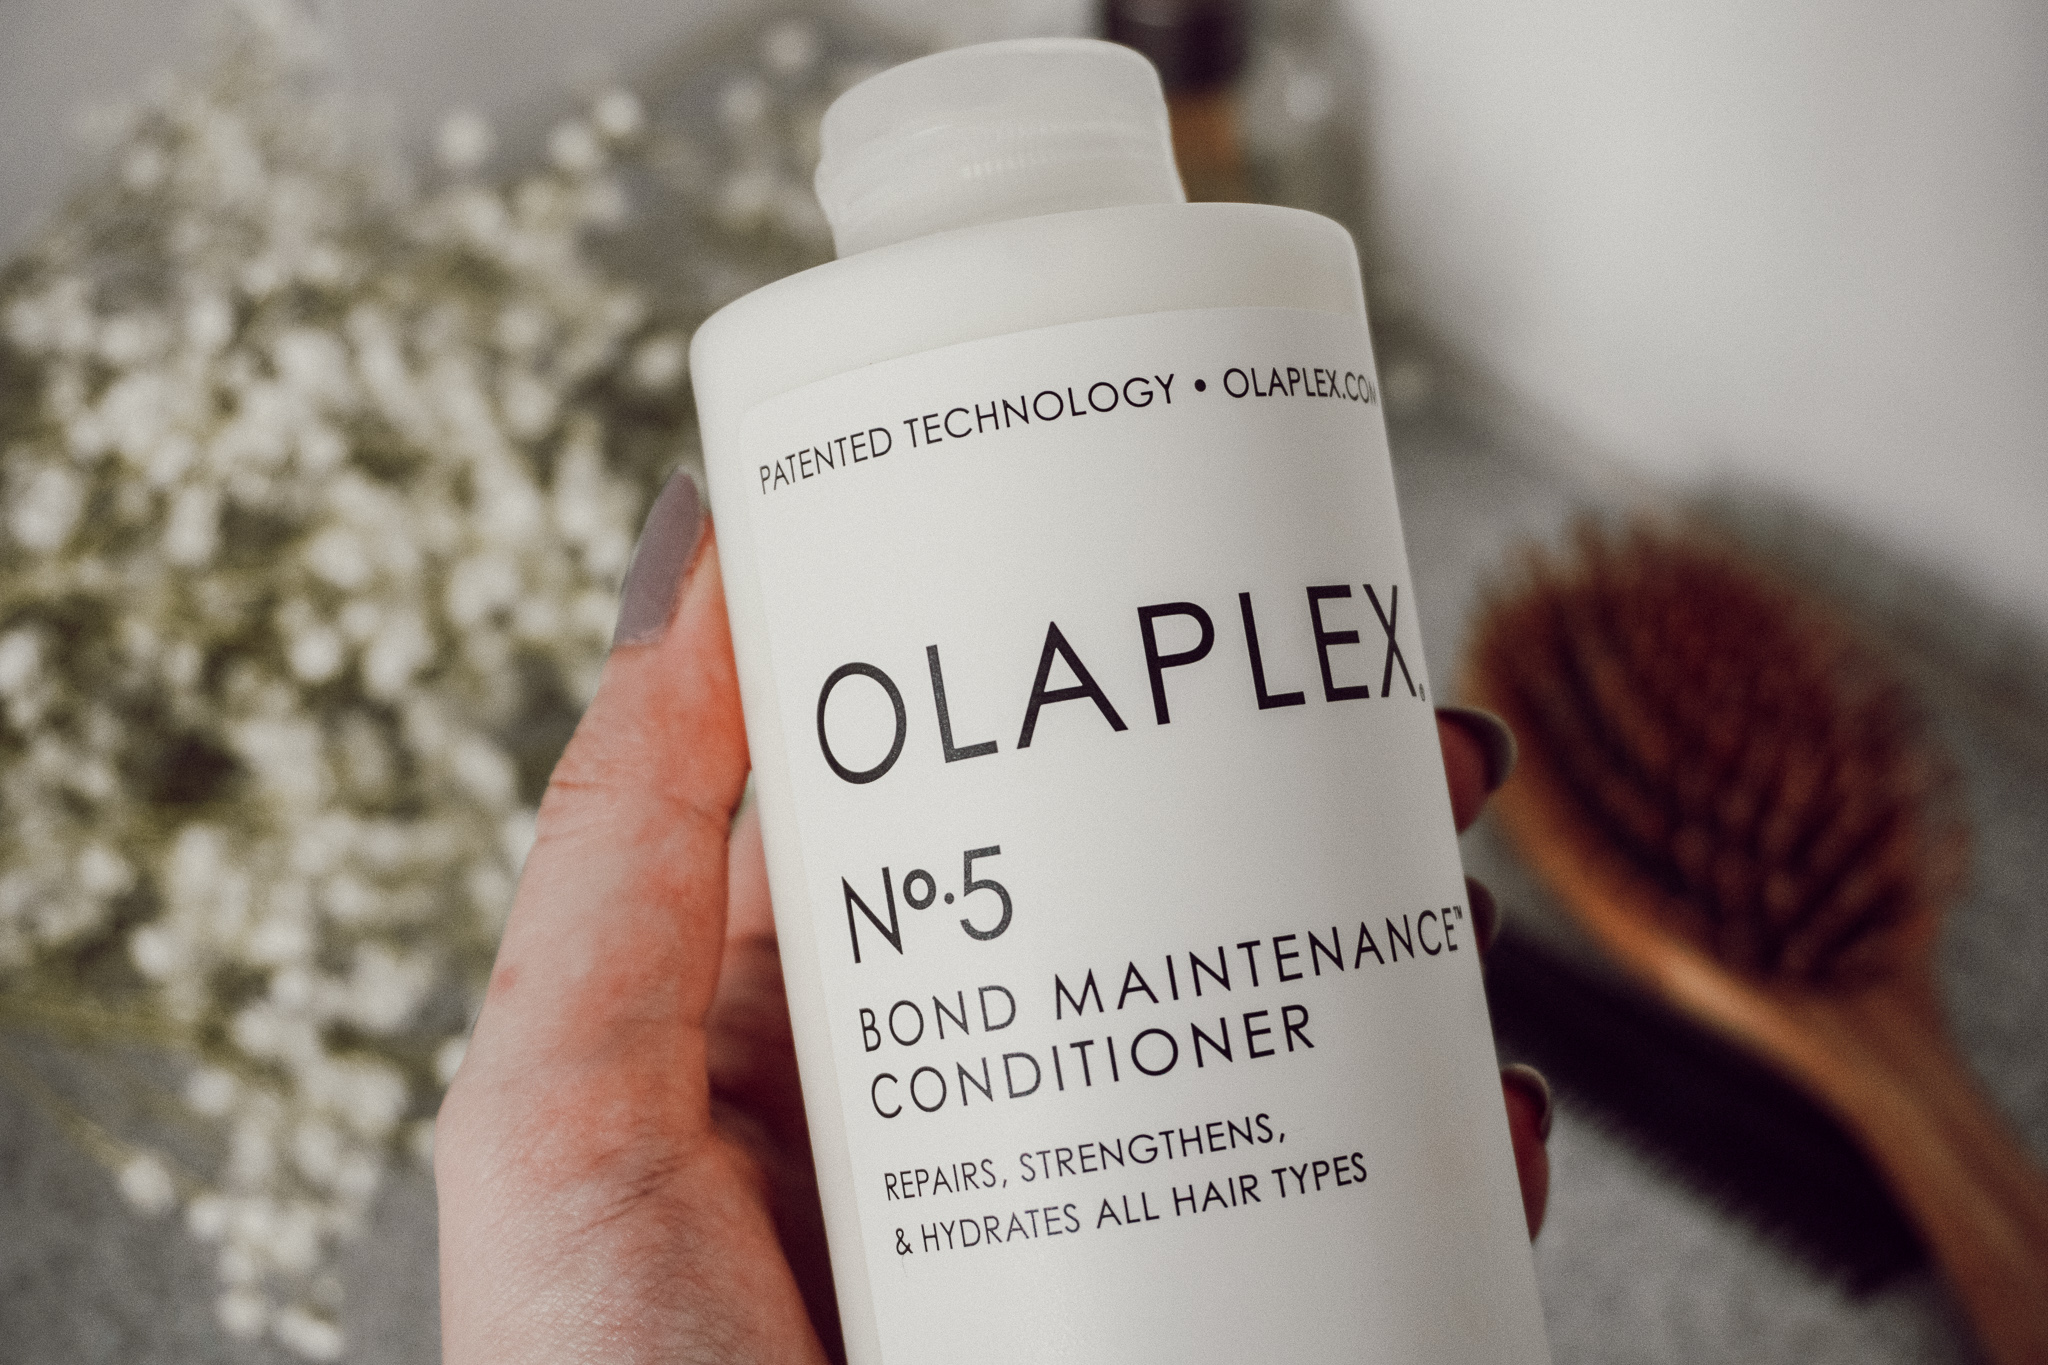 Olaplex N°5 conditioner